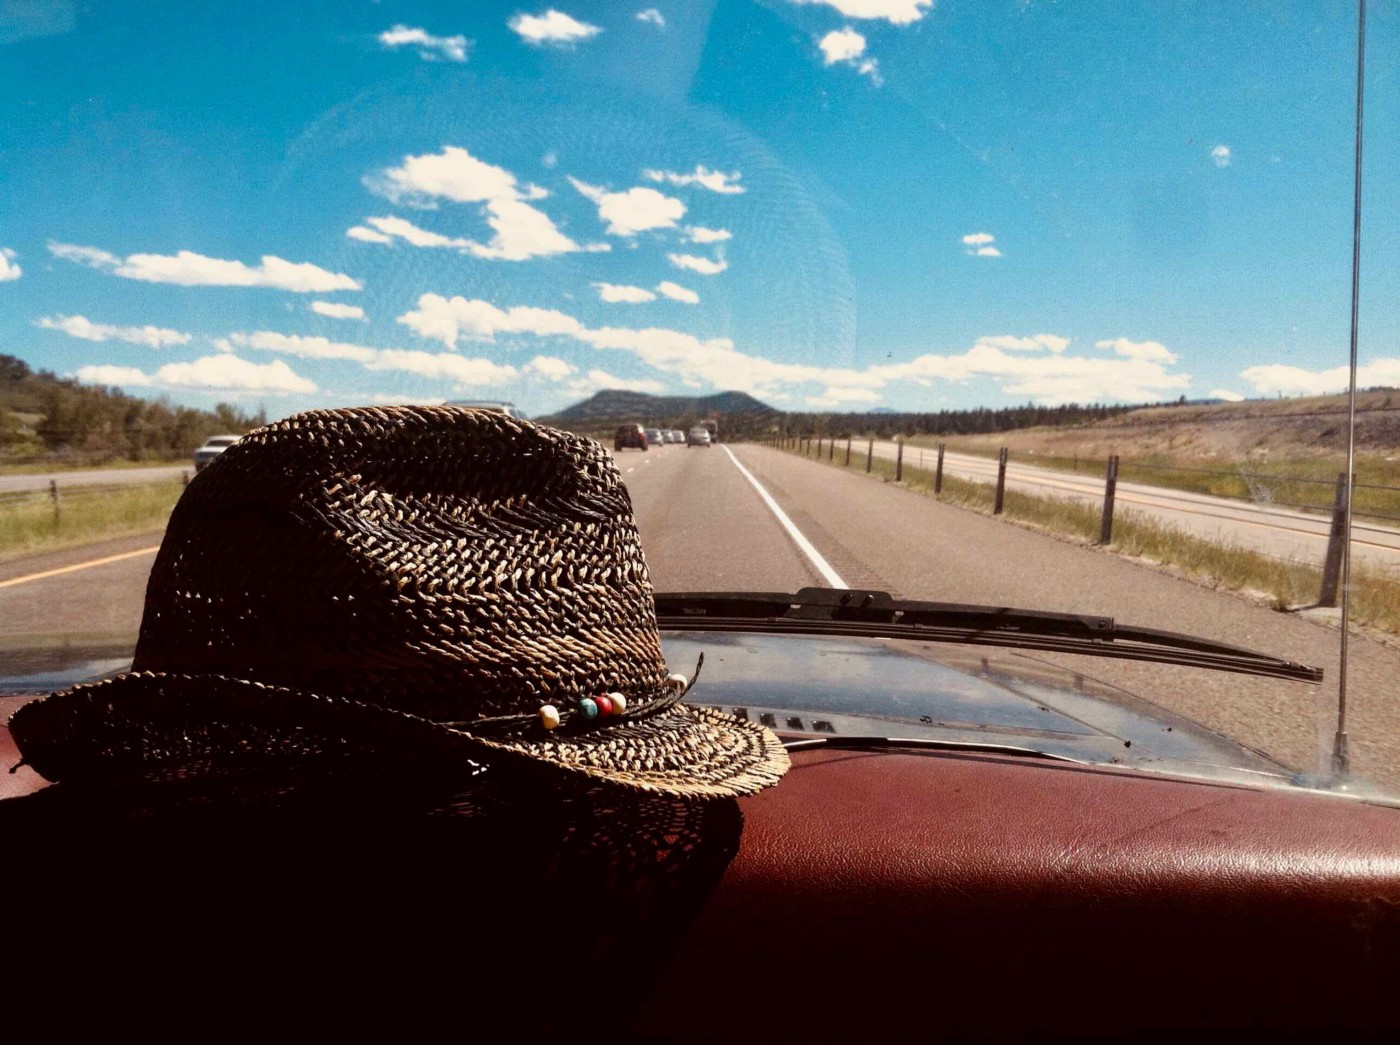 Straw hat resting on the dashboard of a car rolling on a road, sunny day blue skies.